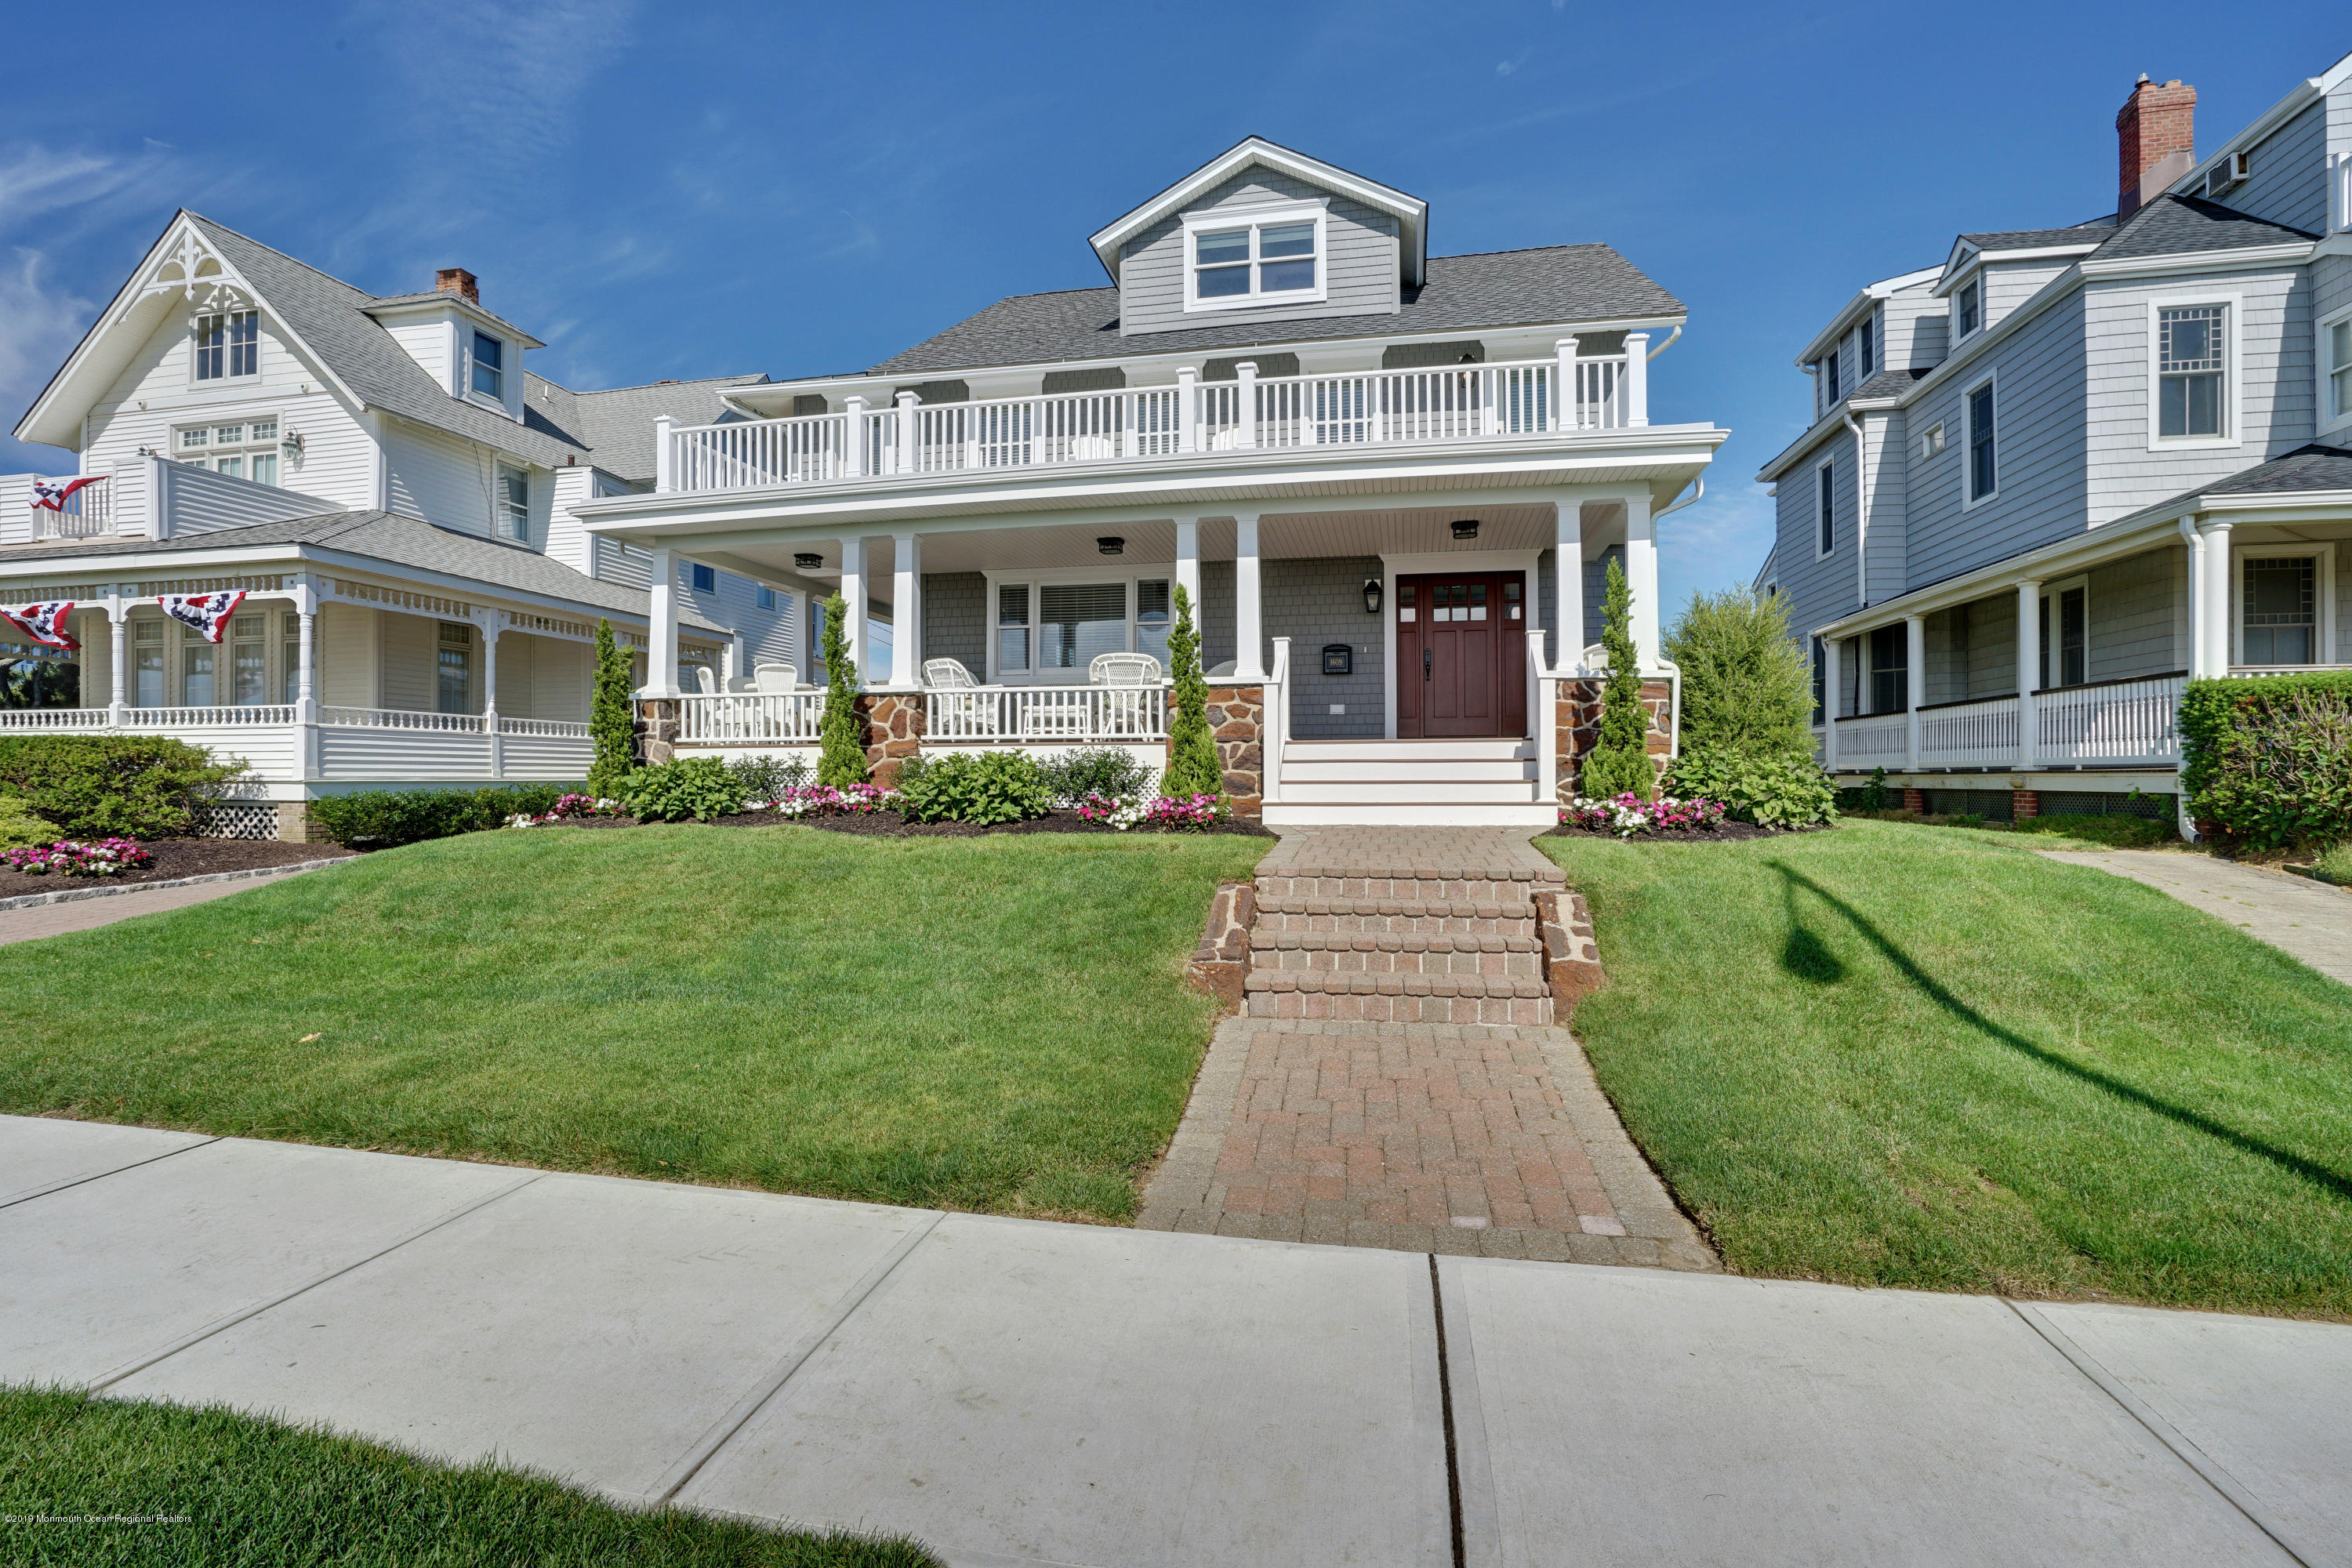 Tremendous Property For Rent At 1609 Ocean Avenue In Spring Lake Nj Home Interior And Landscaping Oversignezvosmurscom